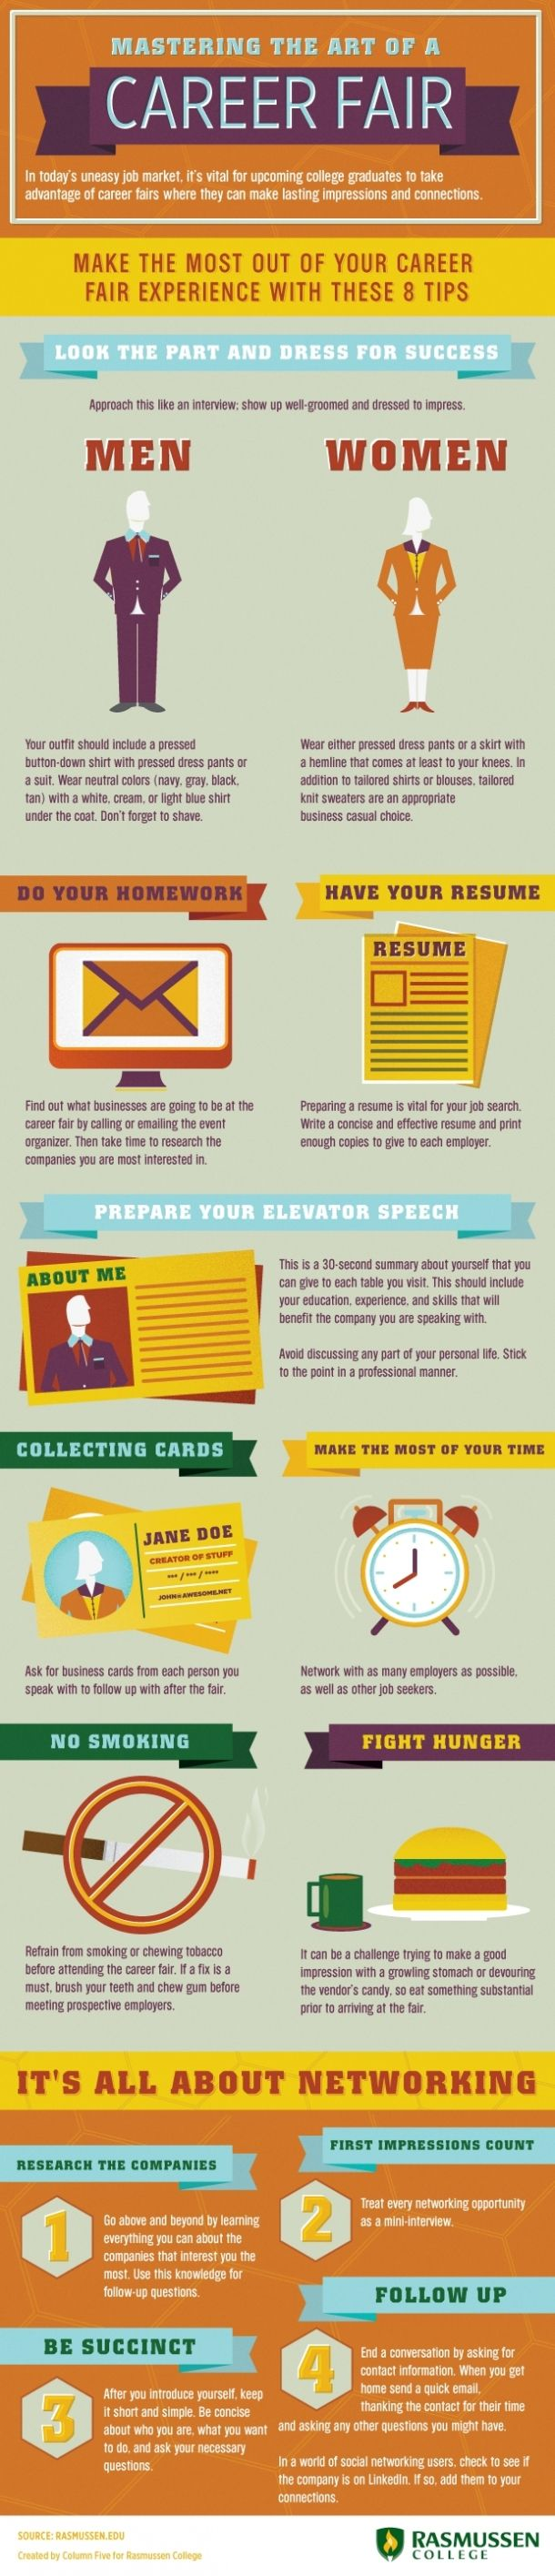 A Great Tool To Prepare Yourself For Career And Internship Fairs!